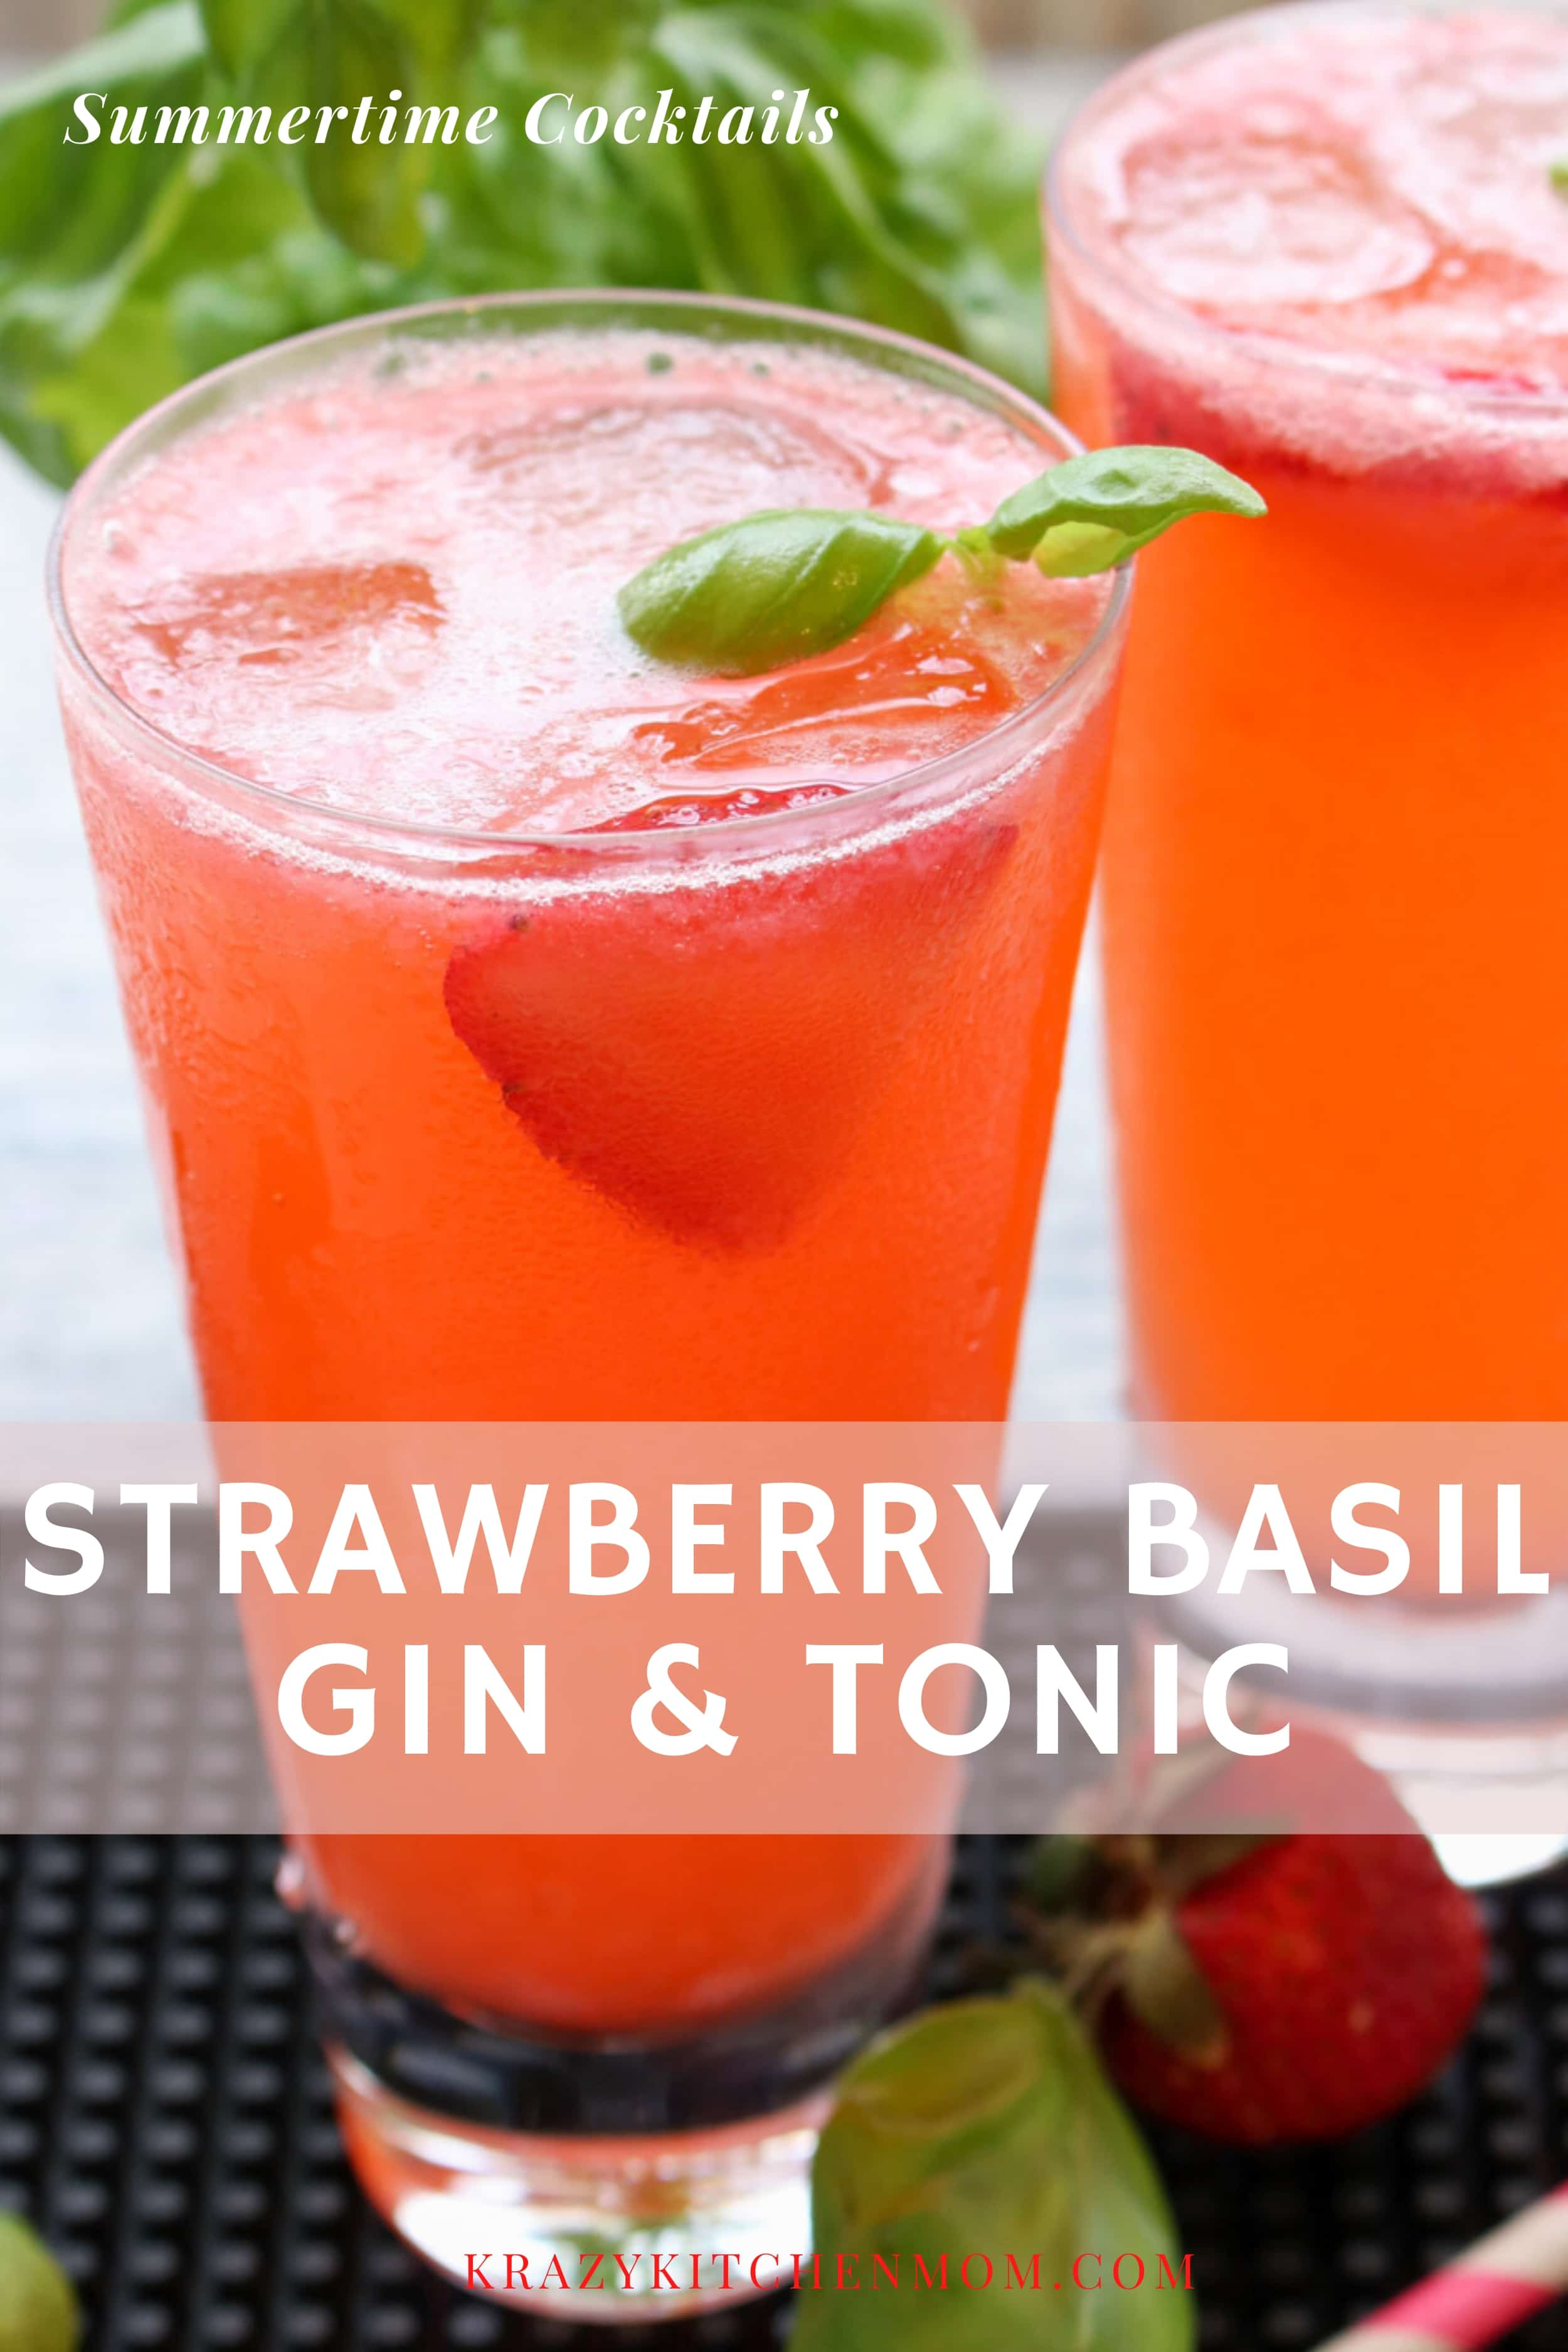 Summertime refreshing cocktail that is sweet from the strawberries, pleasingly pungent from the fresh basil, and fizzy from the tonic water. via @krazykitchenmom